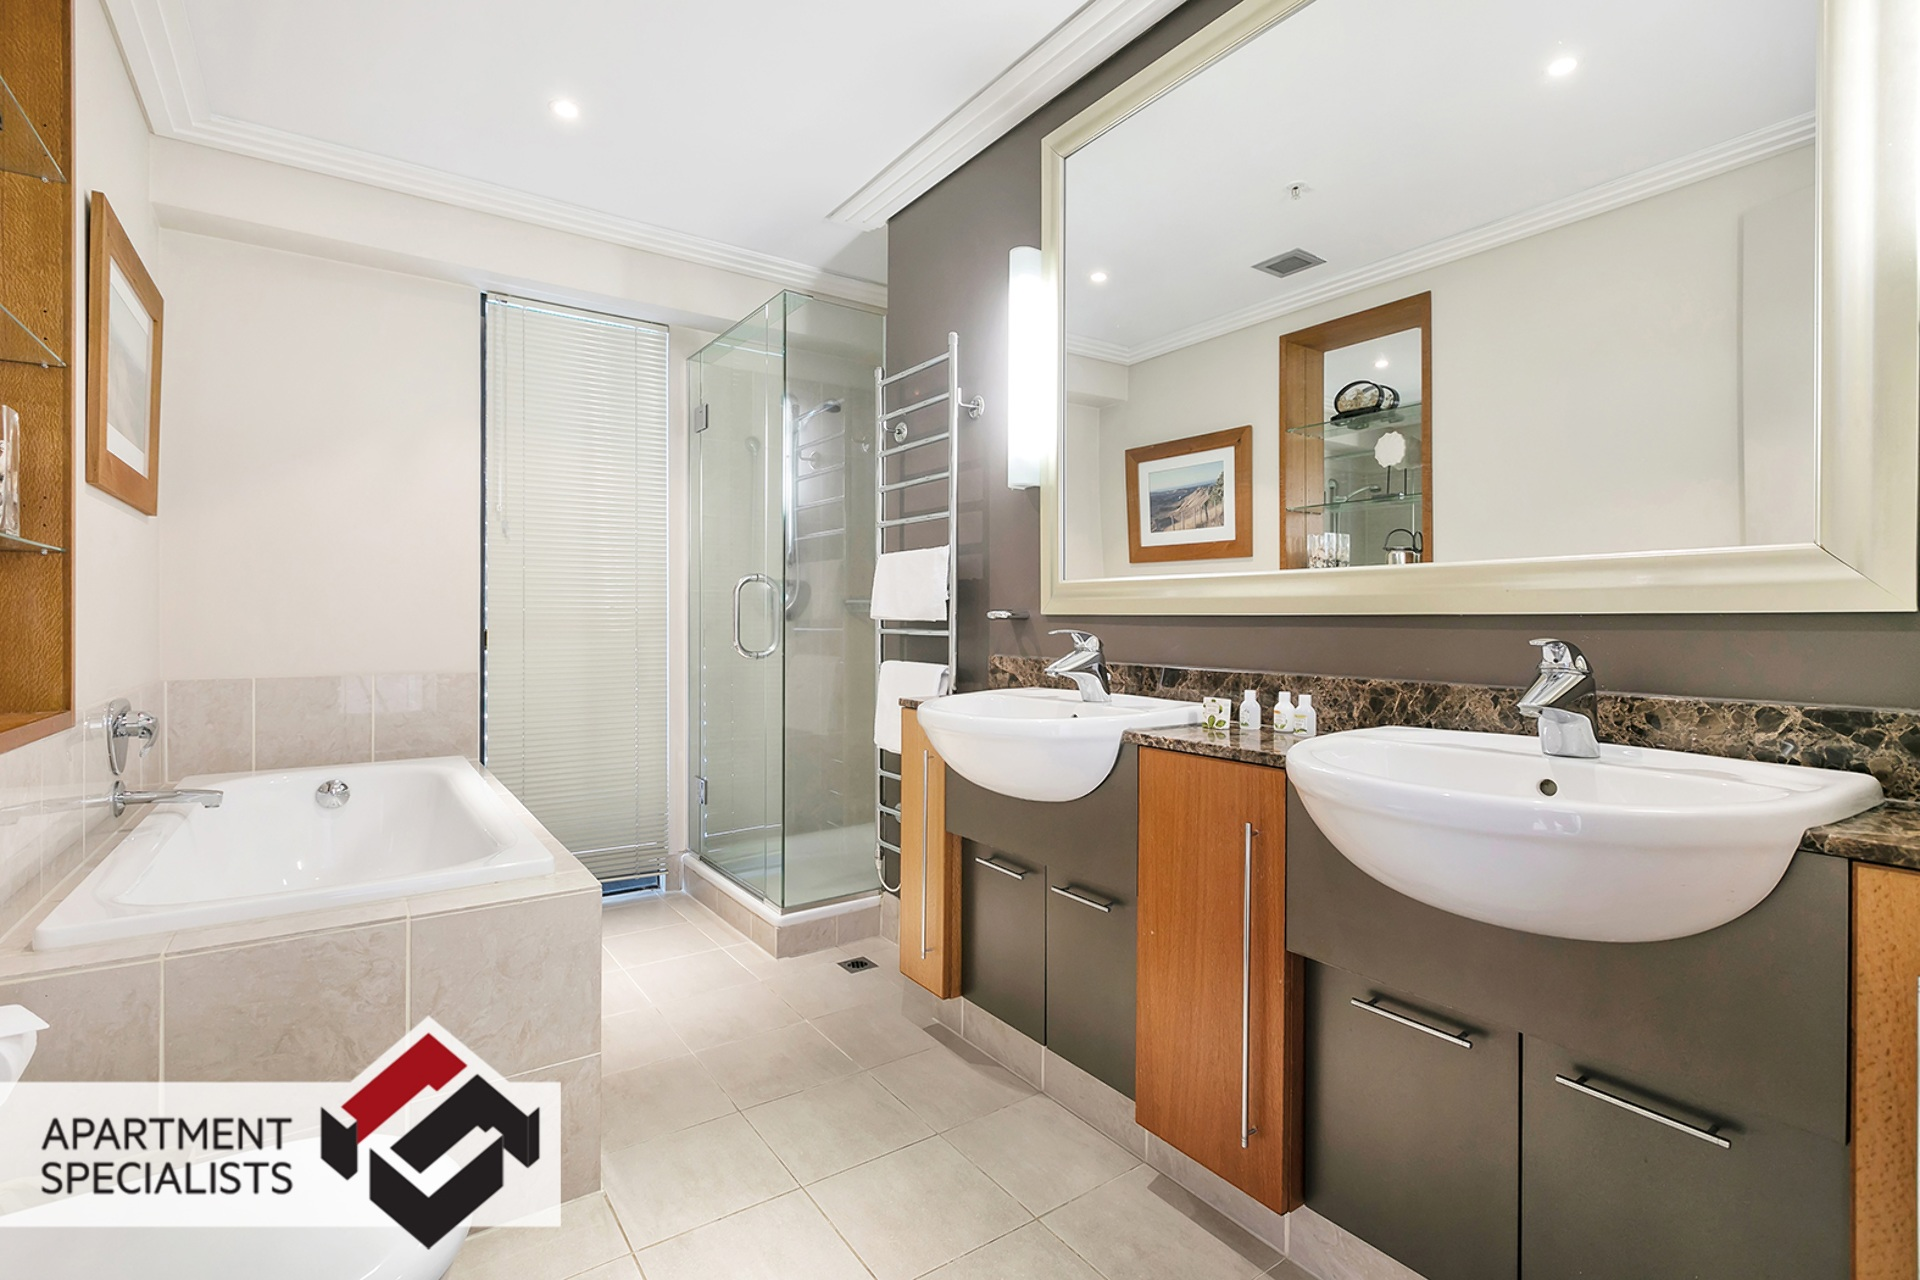 8 | 99 Customs Street West, City Centre | Apartment Specialists